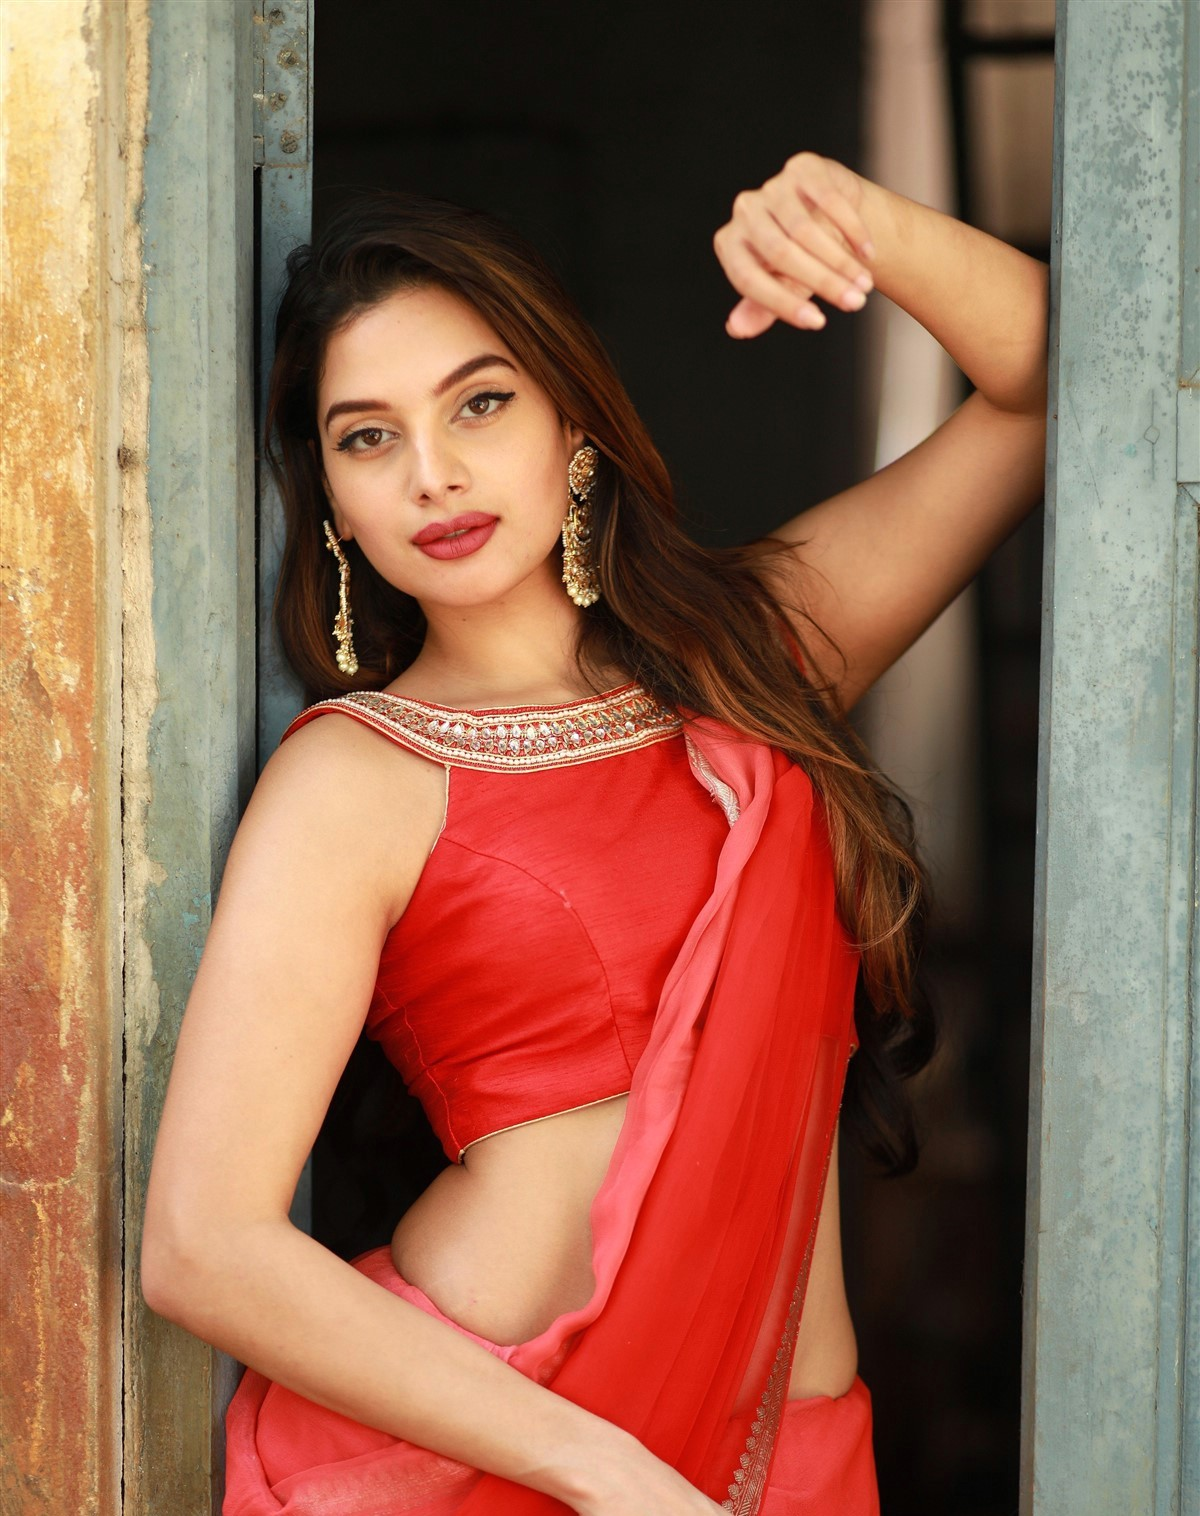 actress tanya hope red saree hot and sexy pose 3 Actress Tanya Hope Hot Red Dress